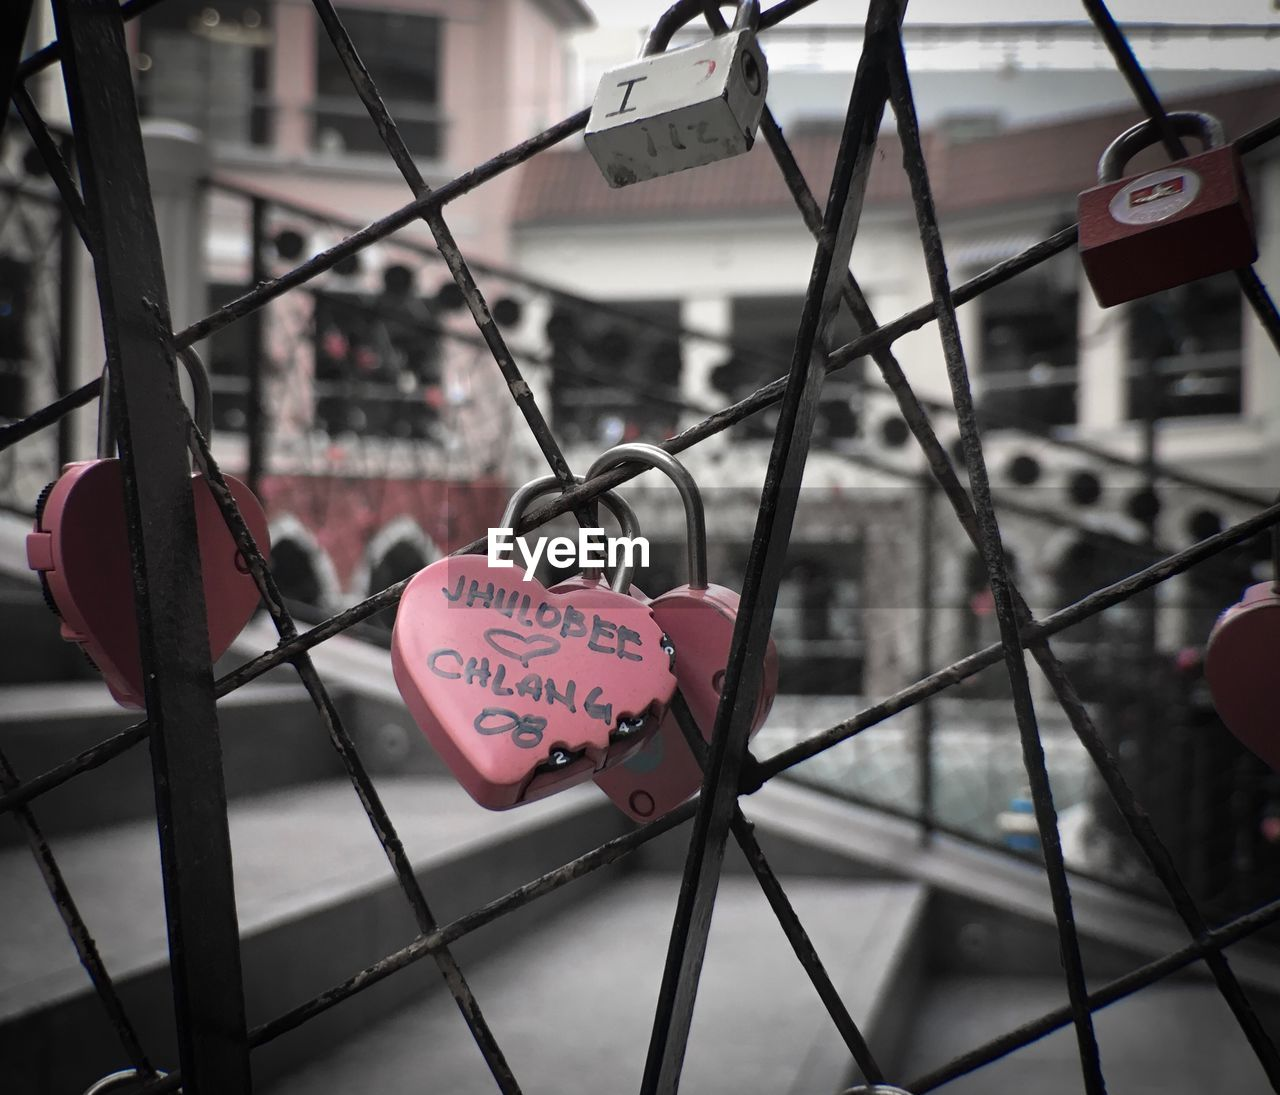 text, love, heart shape, western script, emotion, positive emotion, communication, safety, metal, lock, focus on foreground, padlock, security, protection, fence, close-up, day, barrier, hanging, love lock, no people, outdoors, message